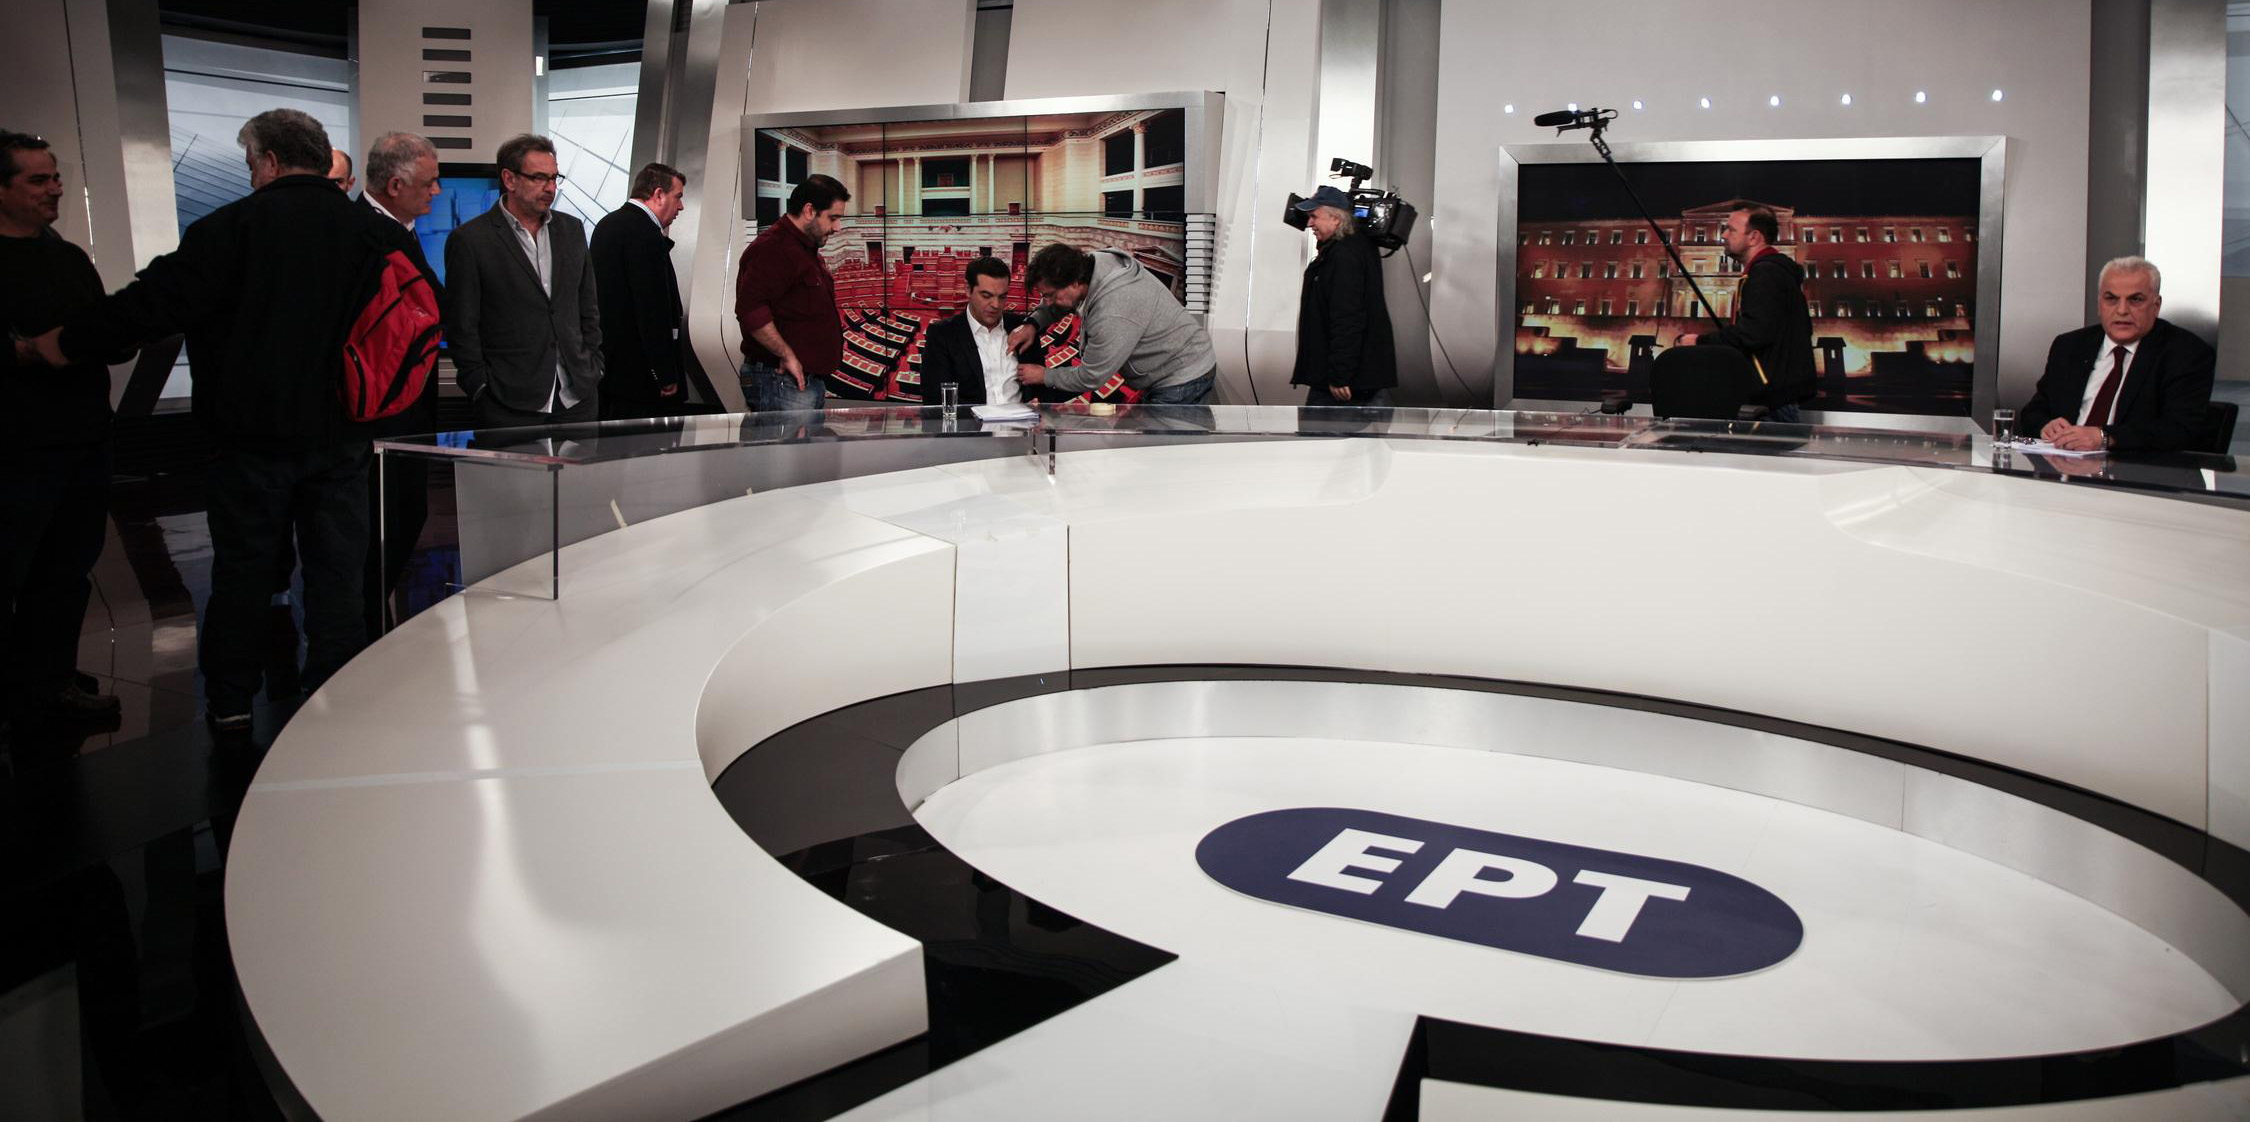 Interview of Greece's Prime Minister Alexis Tsipras, at the state broadcaster ERT, in Agia Paraskevi, Athens, on December 7, 2015 / Συνέντευξη του Πρωθυπουργού Αλέξη Τσίπρα, στα στούντιο της ΕΡΤ, στην Αγία Παρασκευή, Αθήνα, στις 7 Δεκεμβρίου, 2015